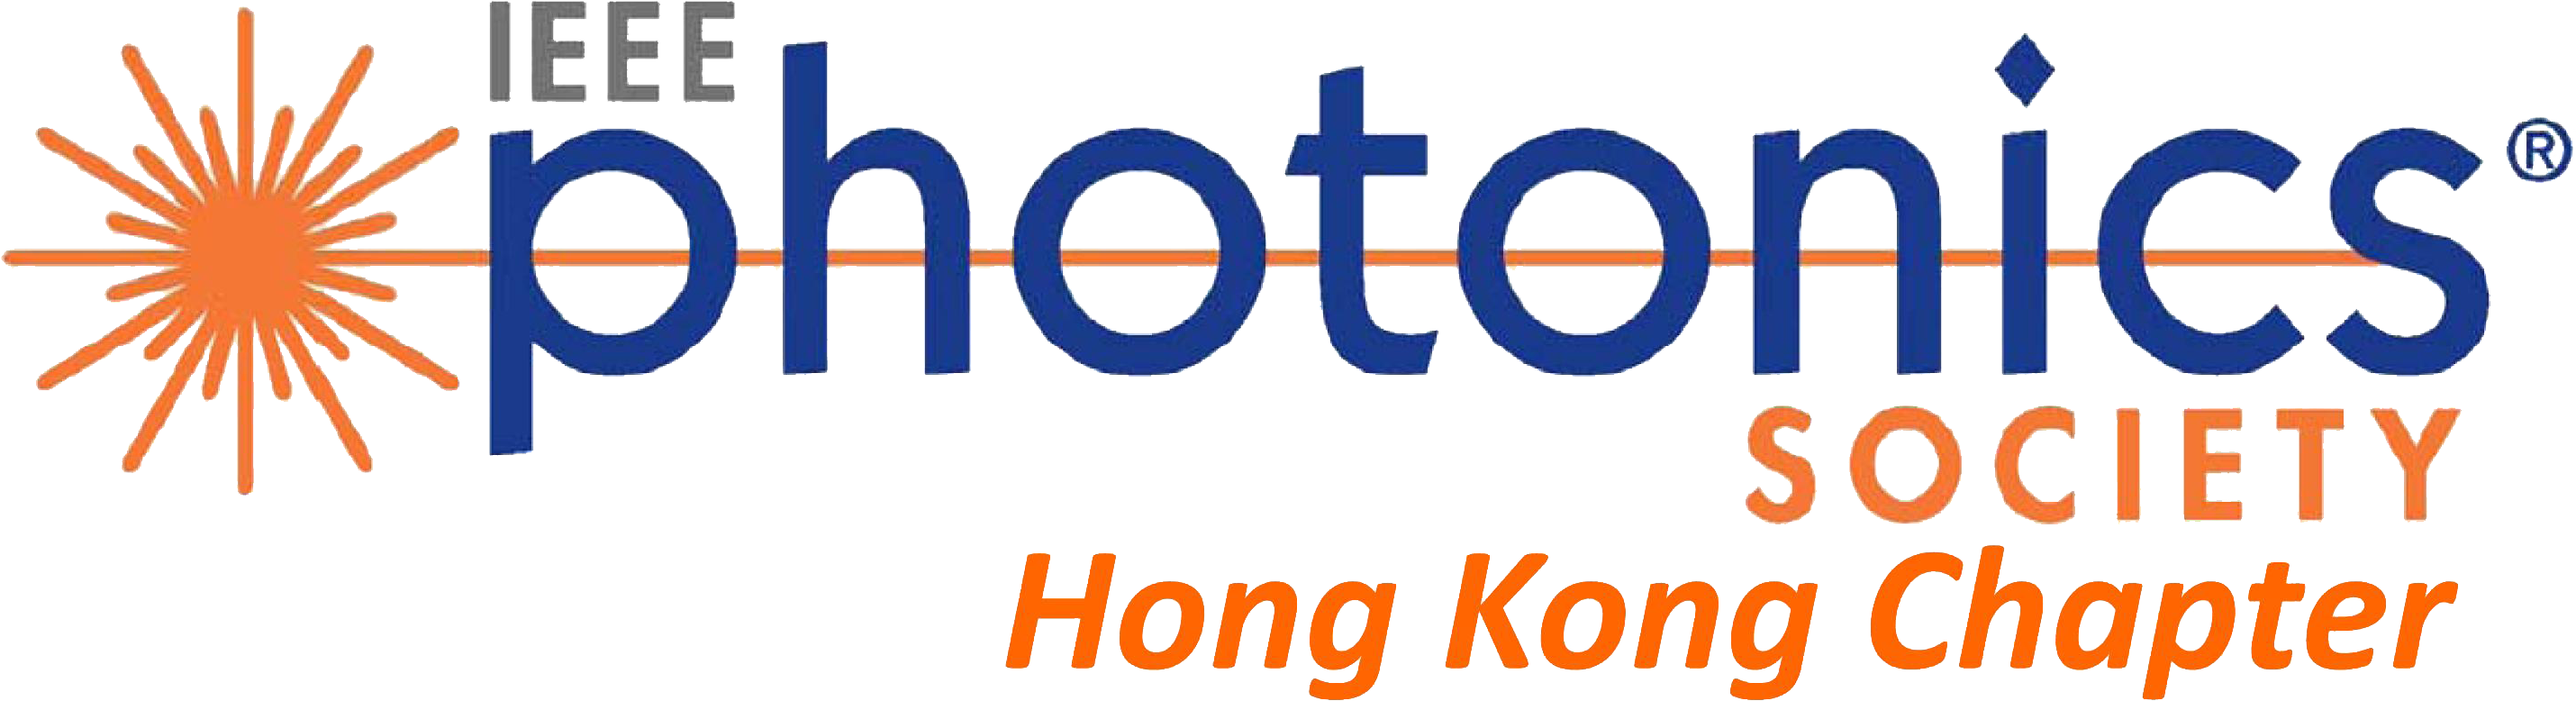 IEEE photonics society hk chapter